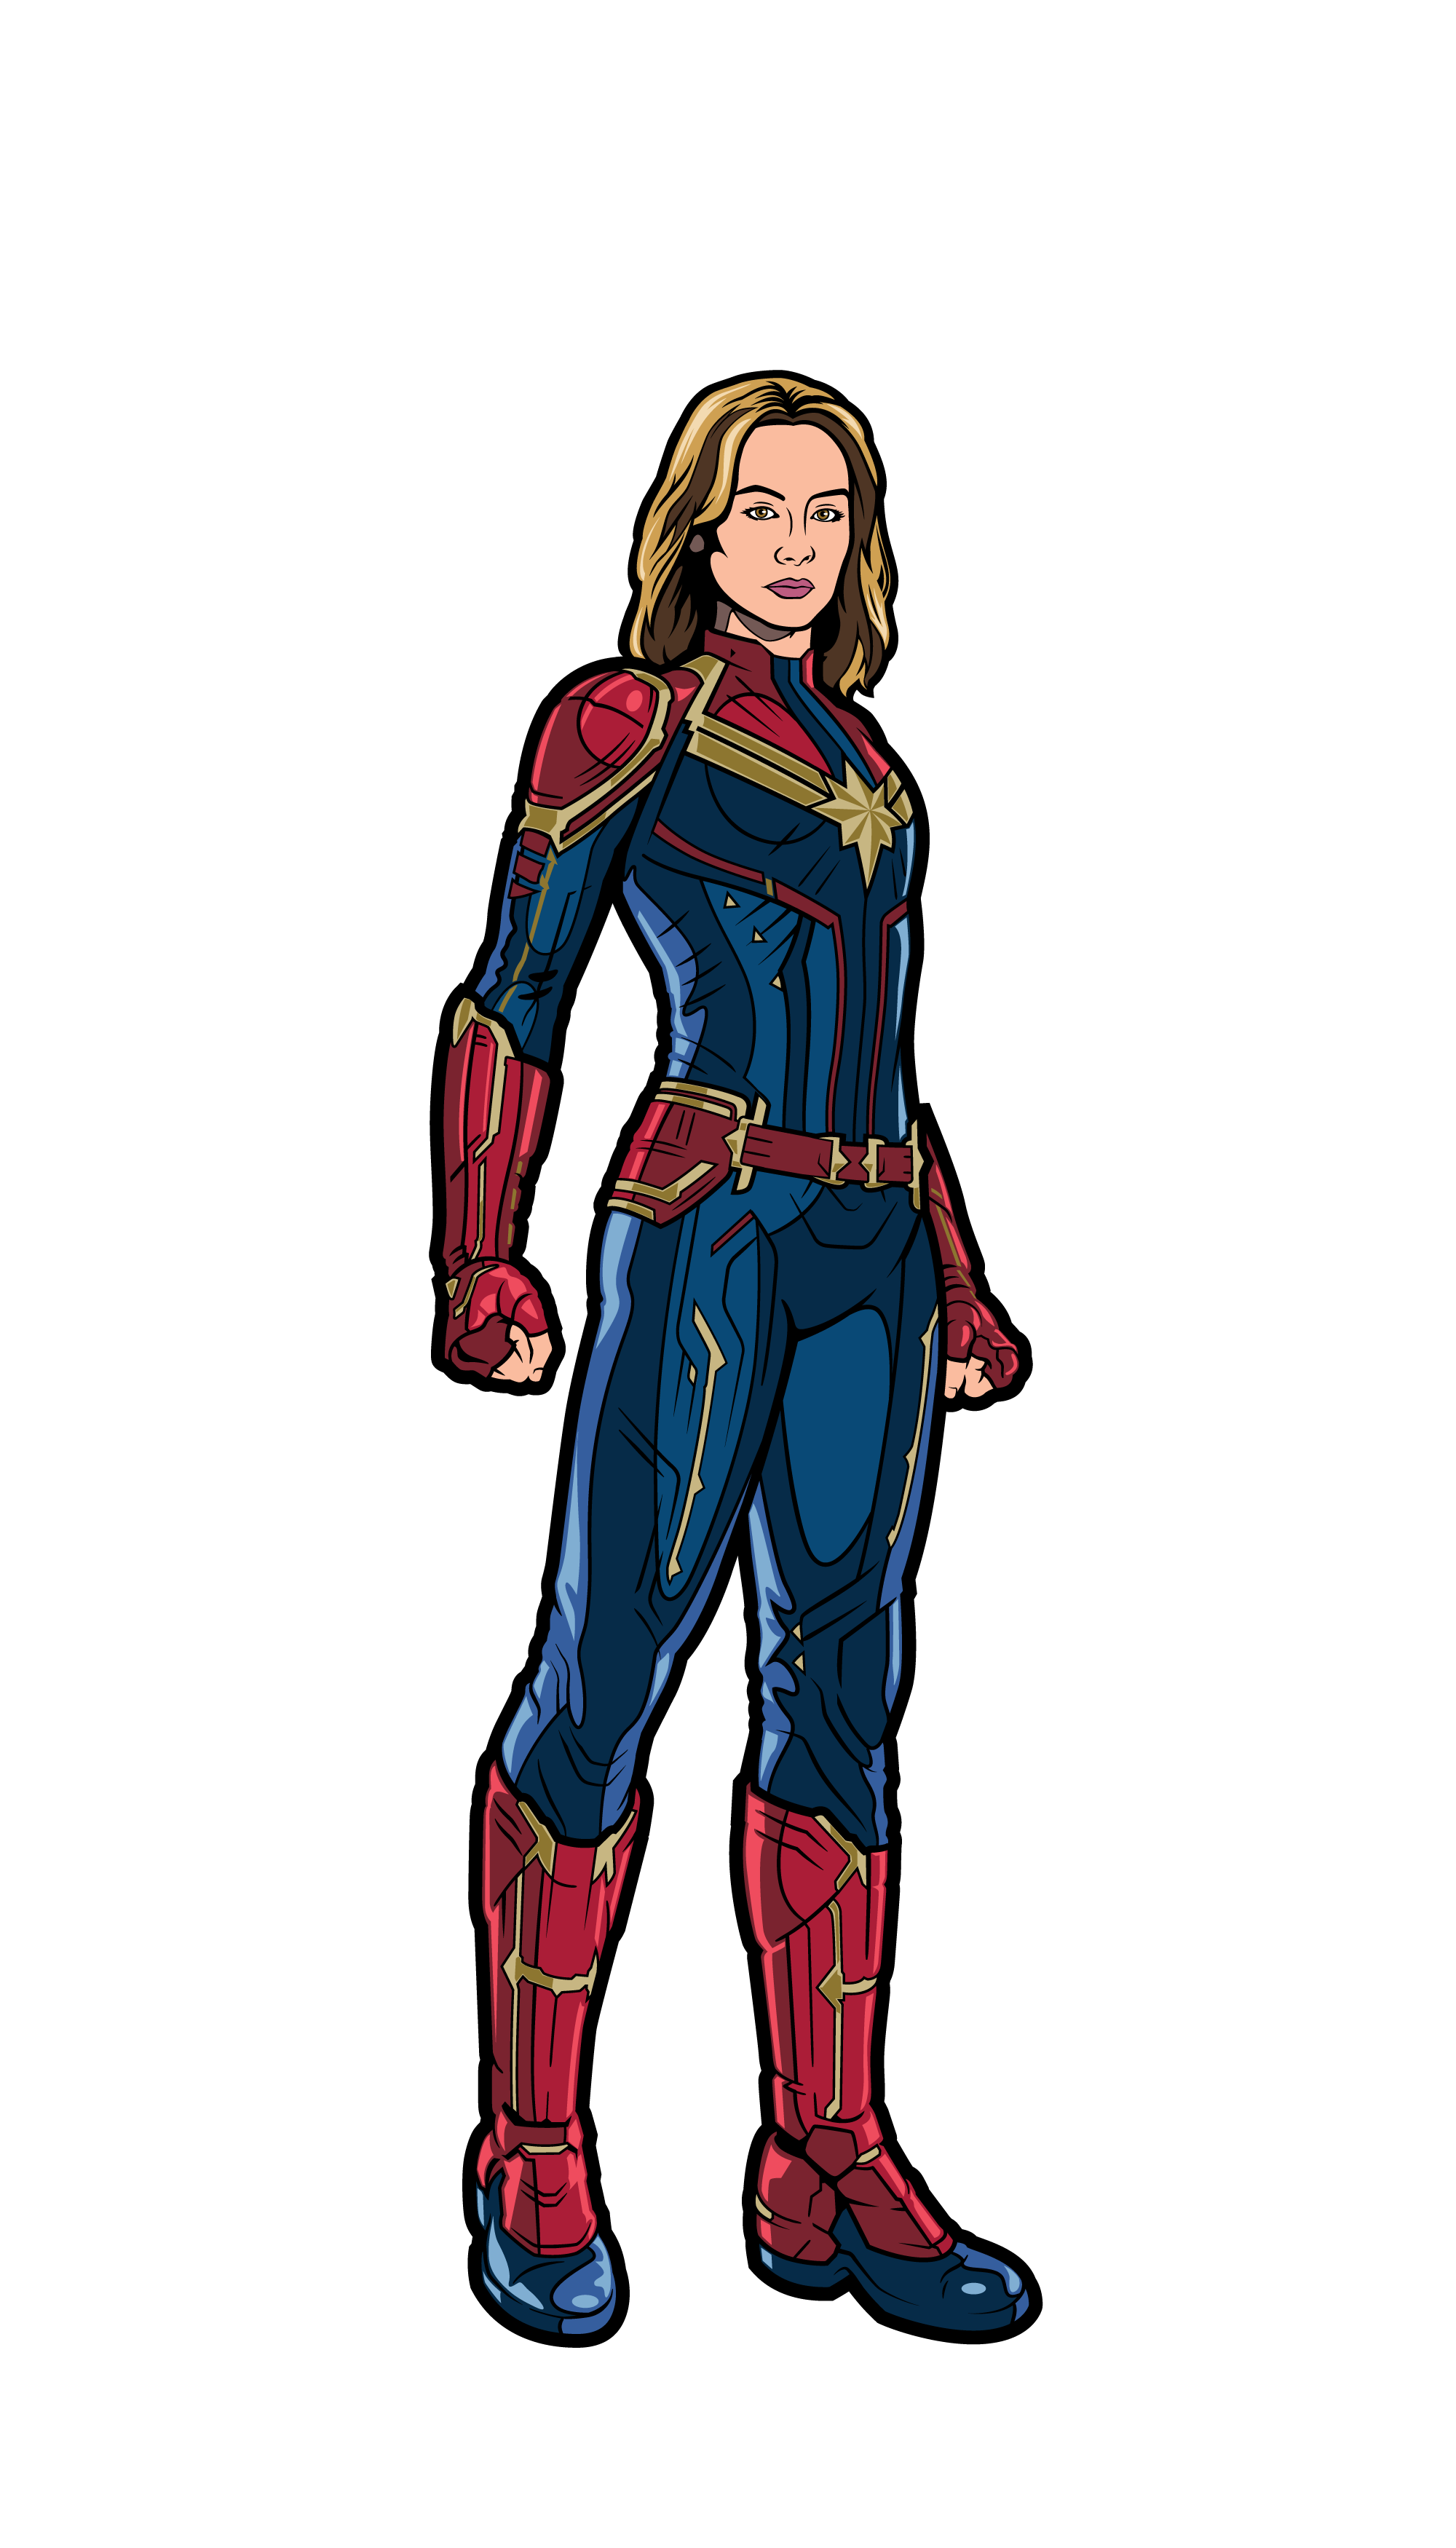 Thanos clipart avengers infinity war. Captain marvel figpin